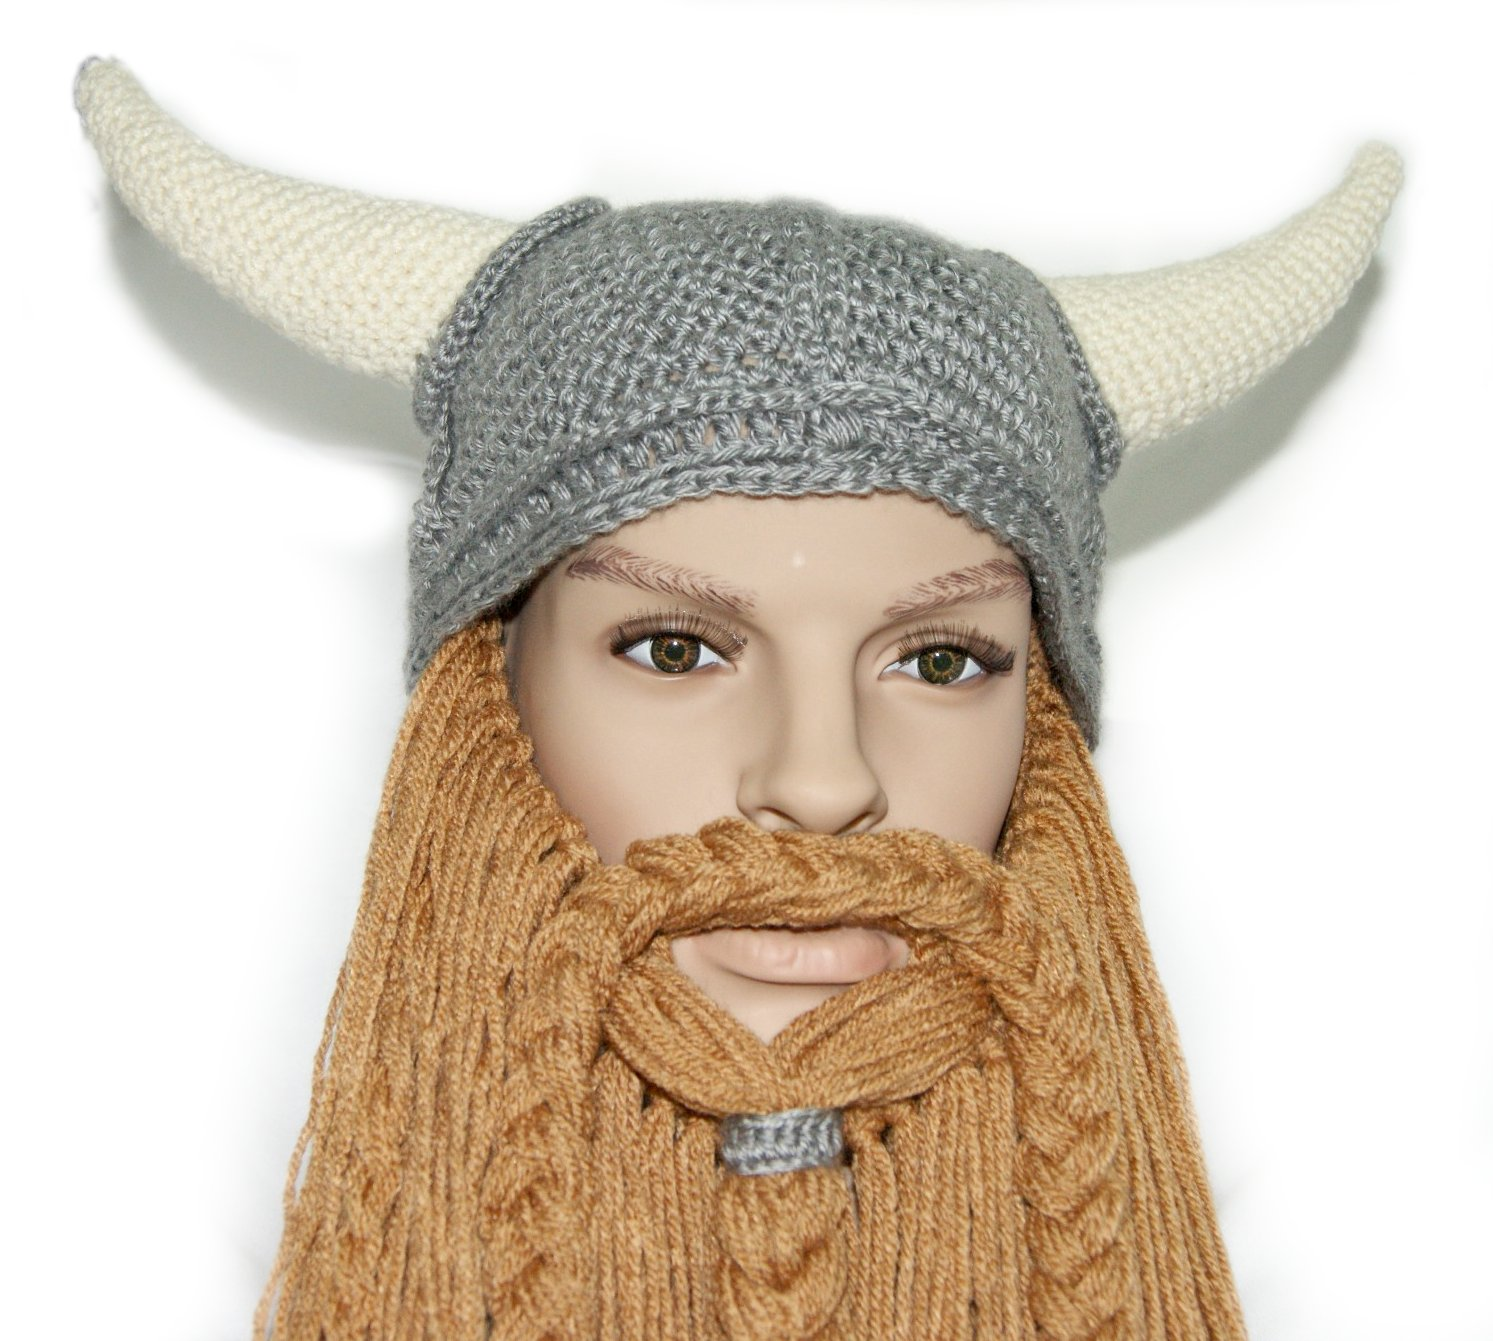 Crochet Viking Hat With Beard : Crochet Beard Beanie Pattern Free Bretts viking hat